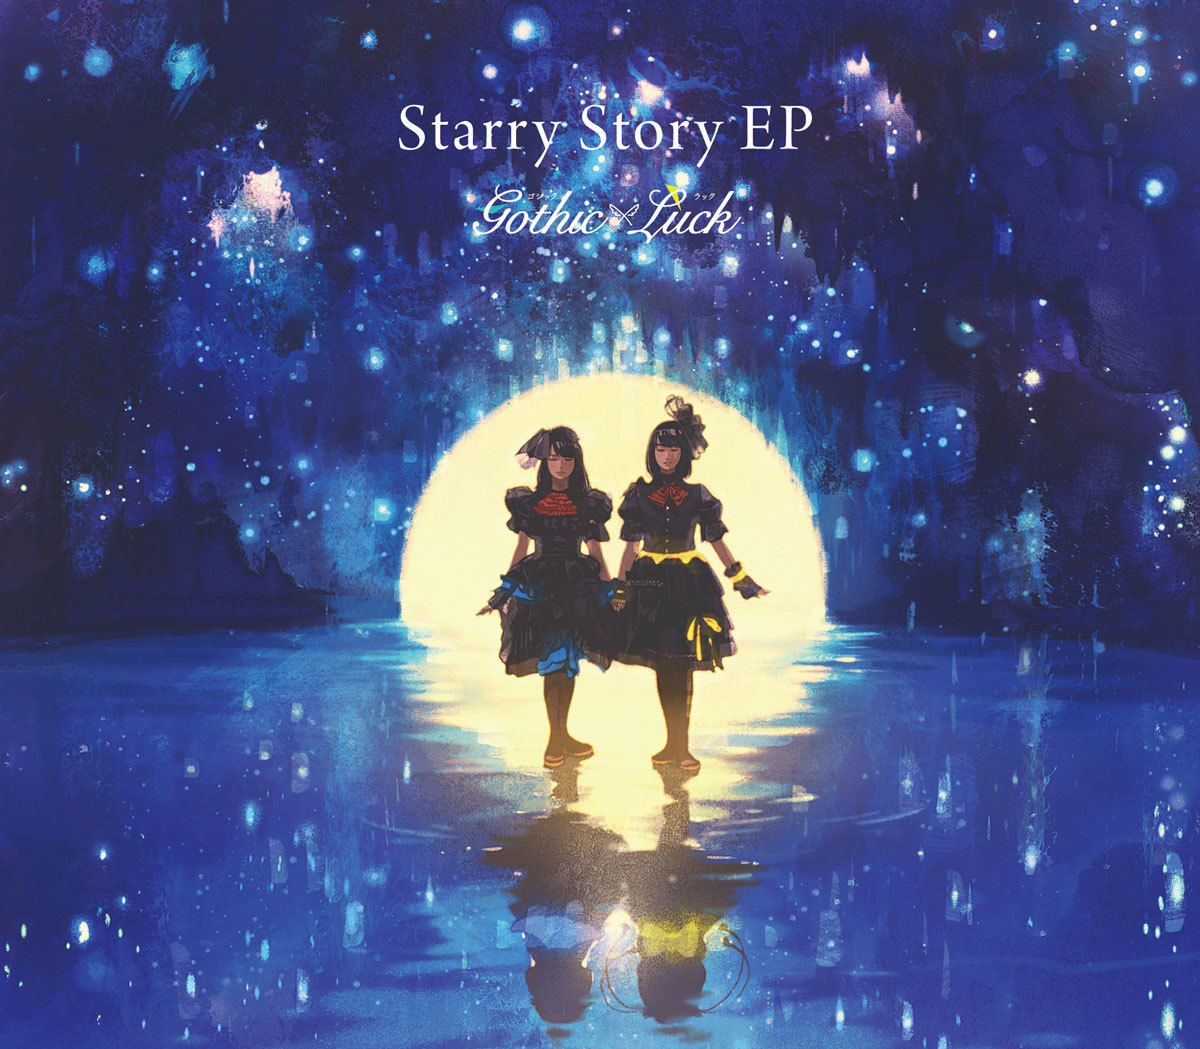 Gothic×Luck「Starry Story」 EP 初回限定盤 (C)けものフレンズプロジェクト2A